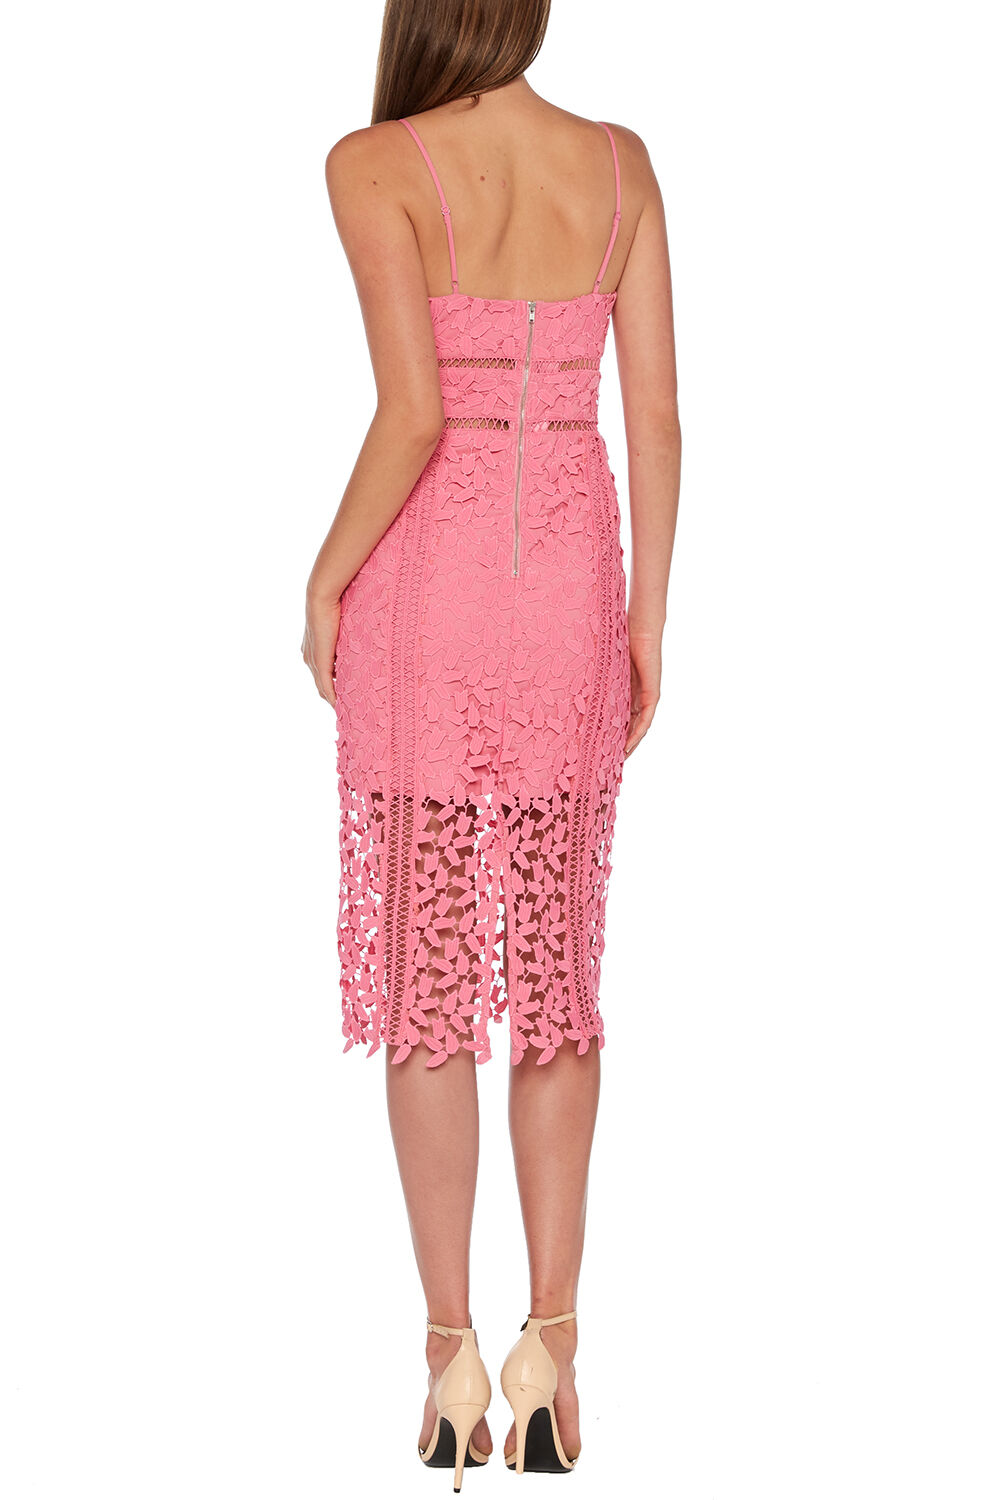 ROXY LACE DRESS in colour SACHET PINK